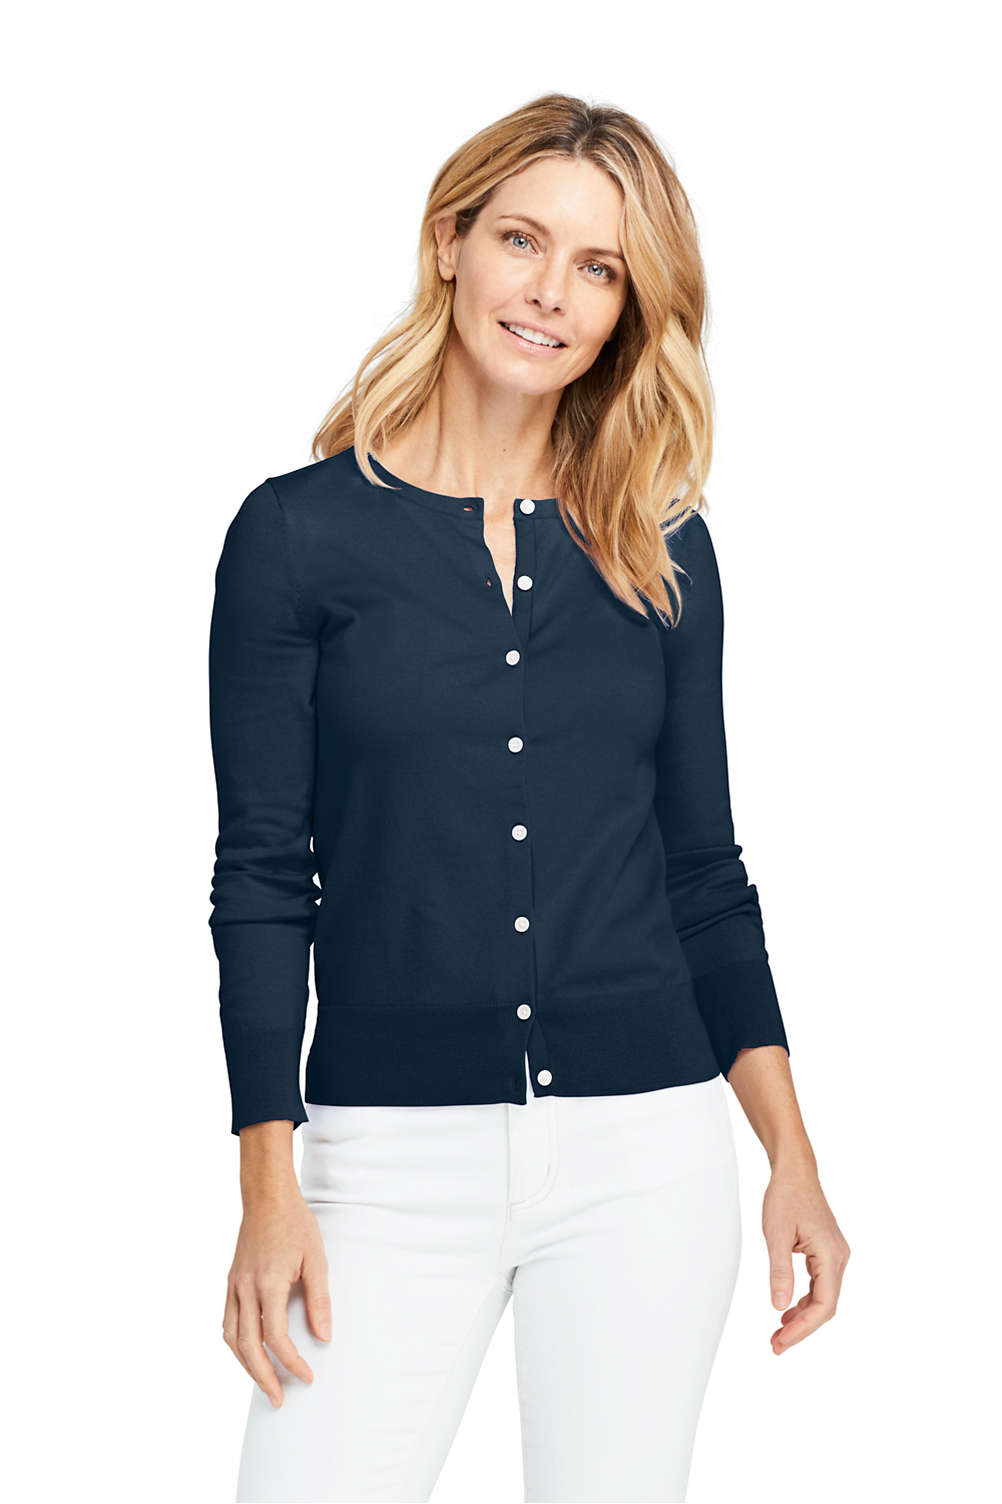 4be15c5727d4 Women's Supima Cotton Long Sleeve Cardigan Sweater from Lands' End